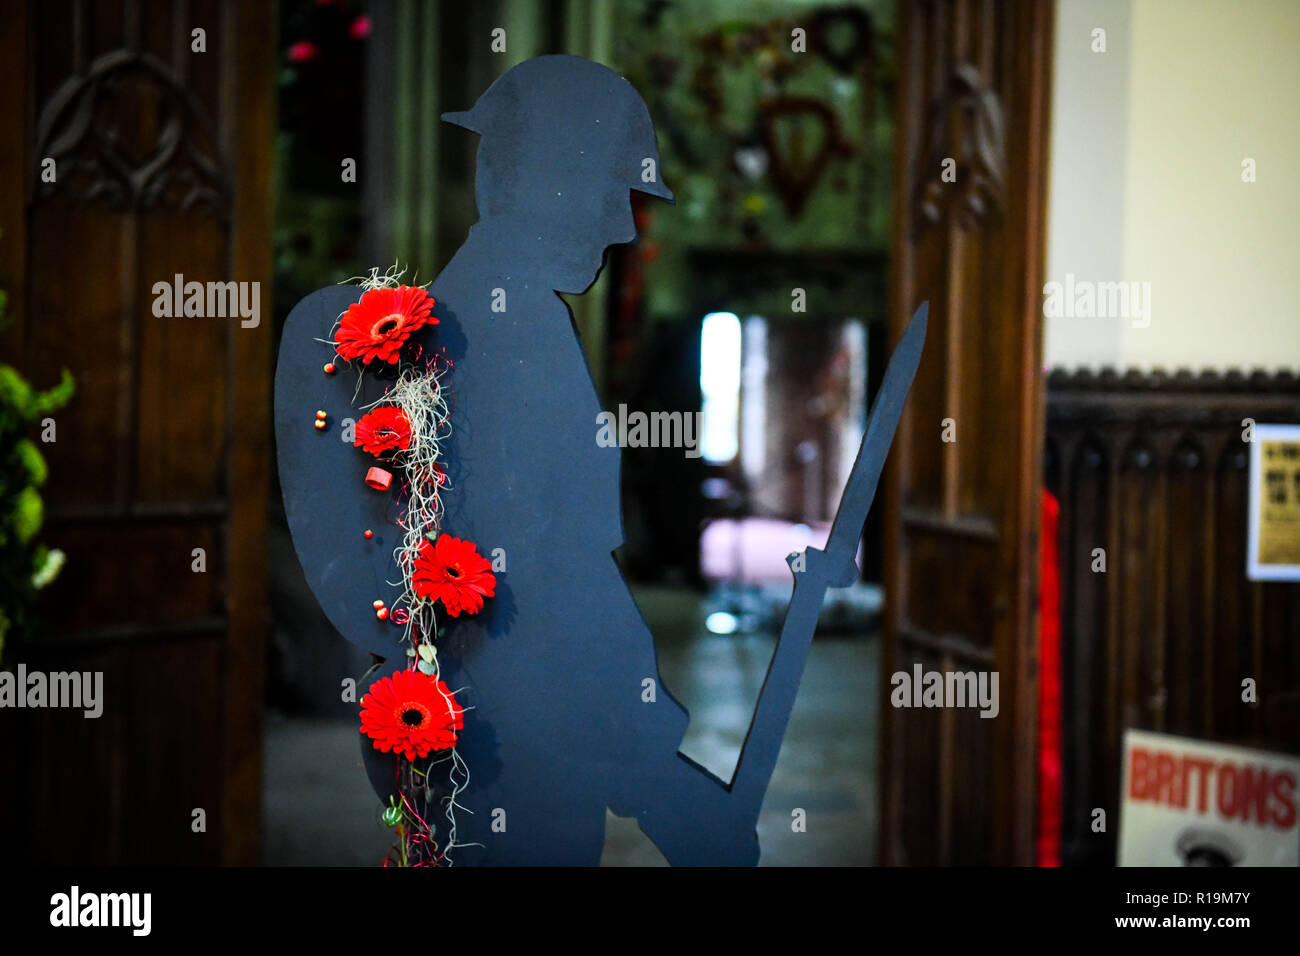 Margam, South Wales, UK. 10th November 2018 Red flowers drape from a silhouette of a soldier at Margam Castle in South Wales, UK, as part of the Lest We Forget floral exhibition which is being held at Margam Country Park, just one of the many remembrance events happing all over the UK to honour those who lived, fought and died in the First World War. Credit: Robert Melen/Alamy Live News - Stock Image